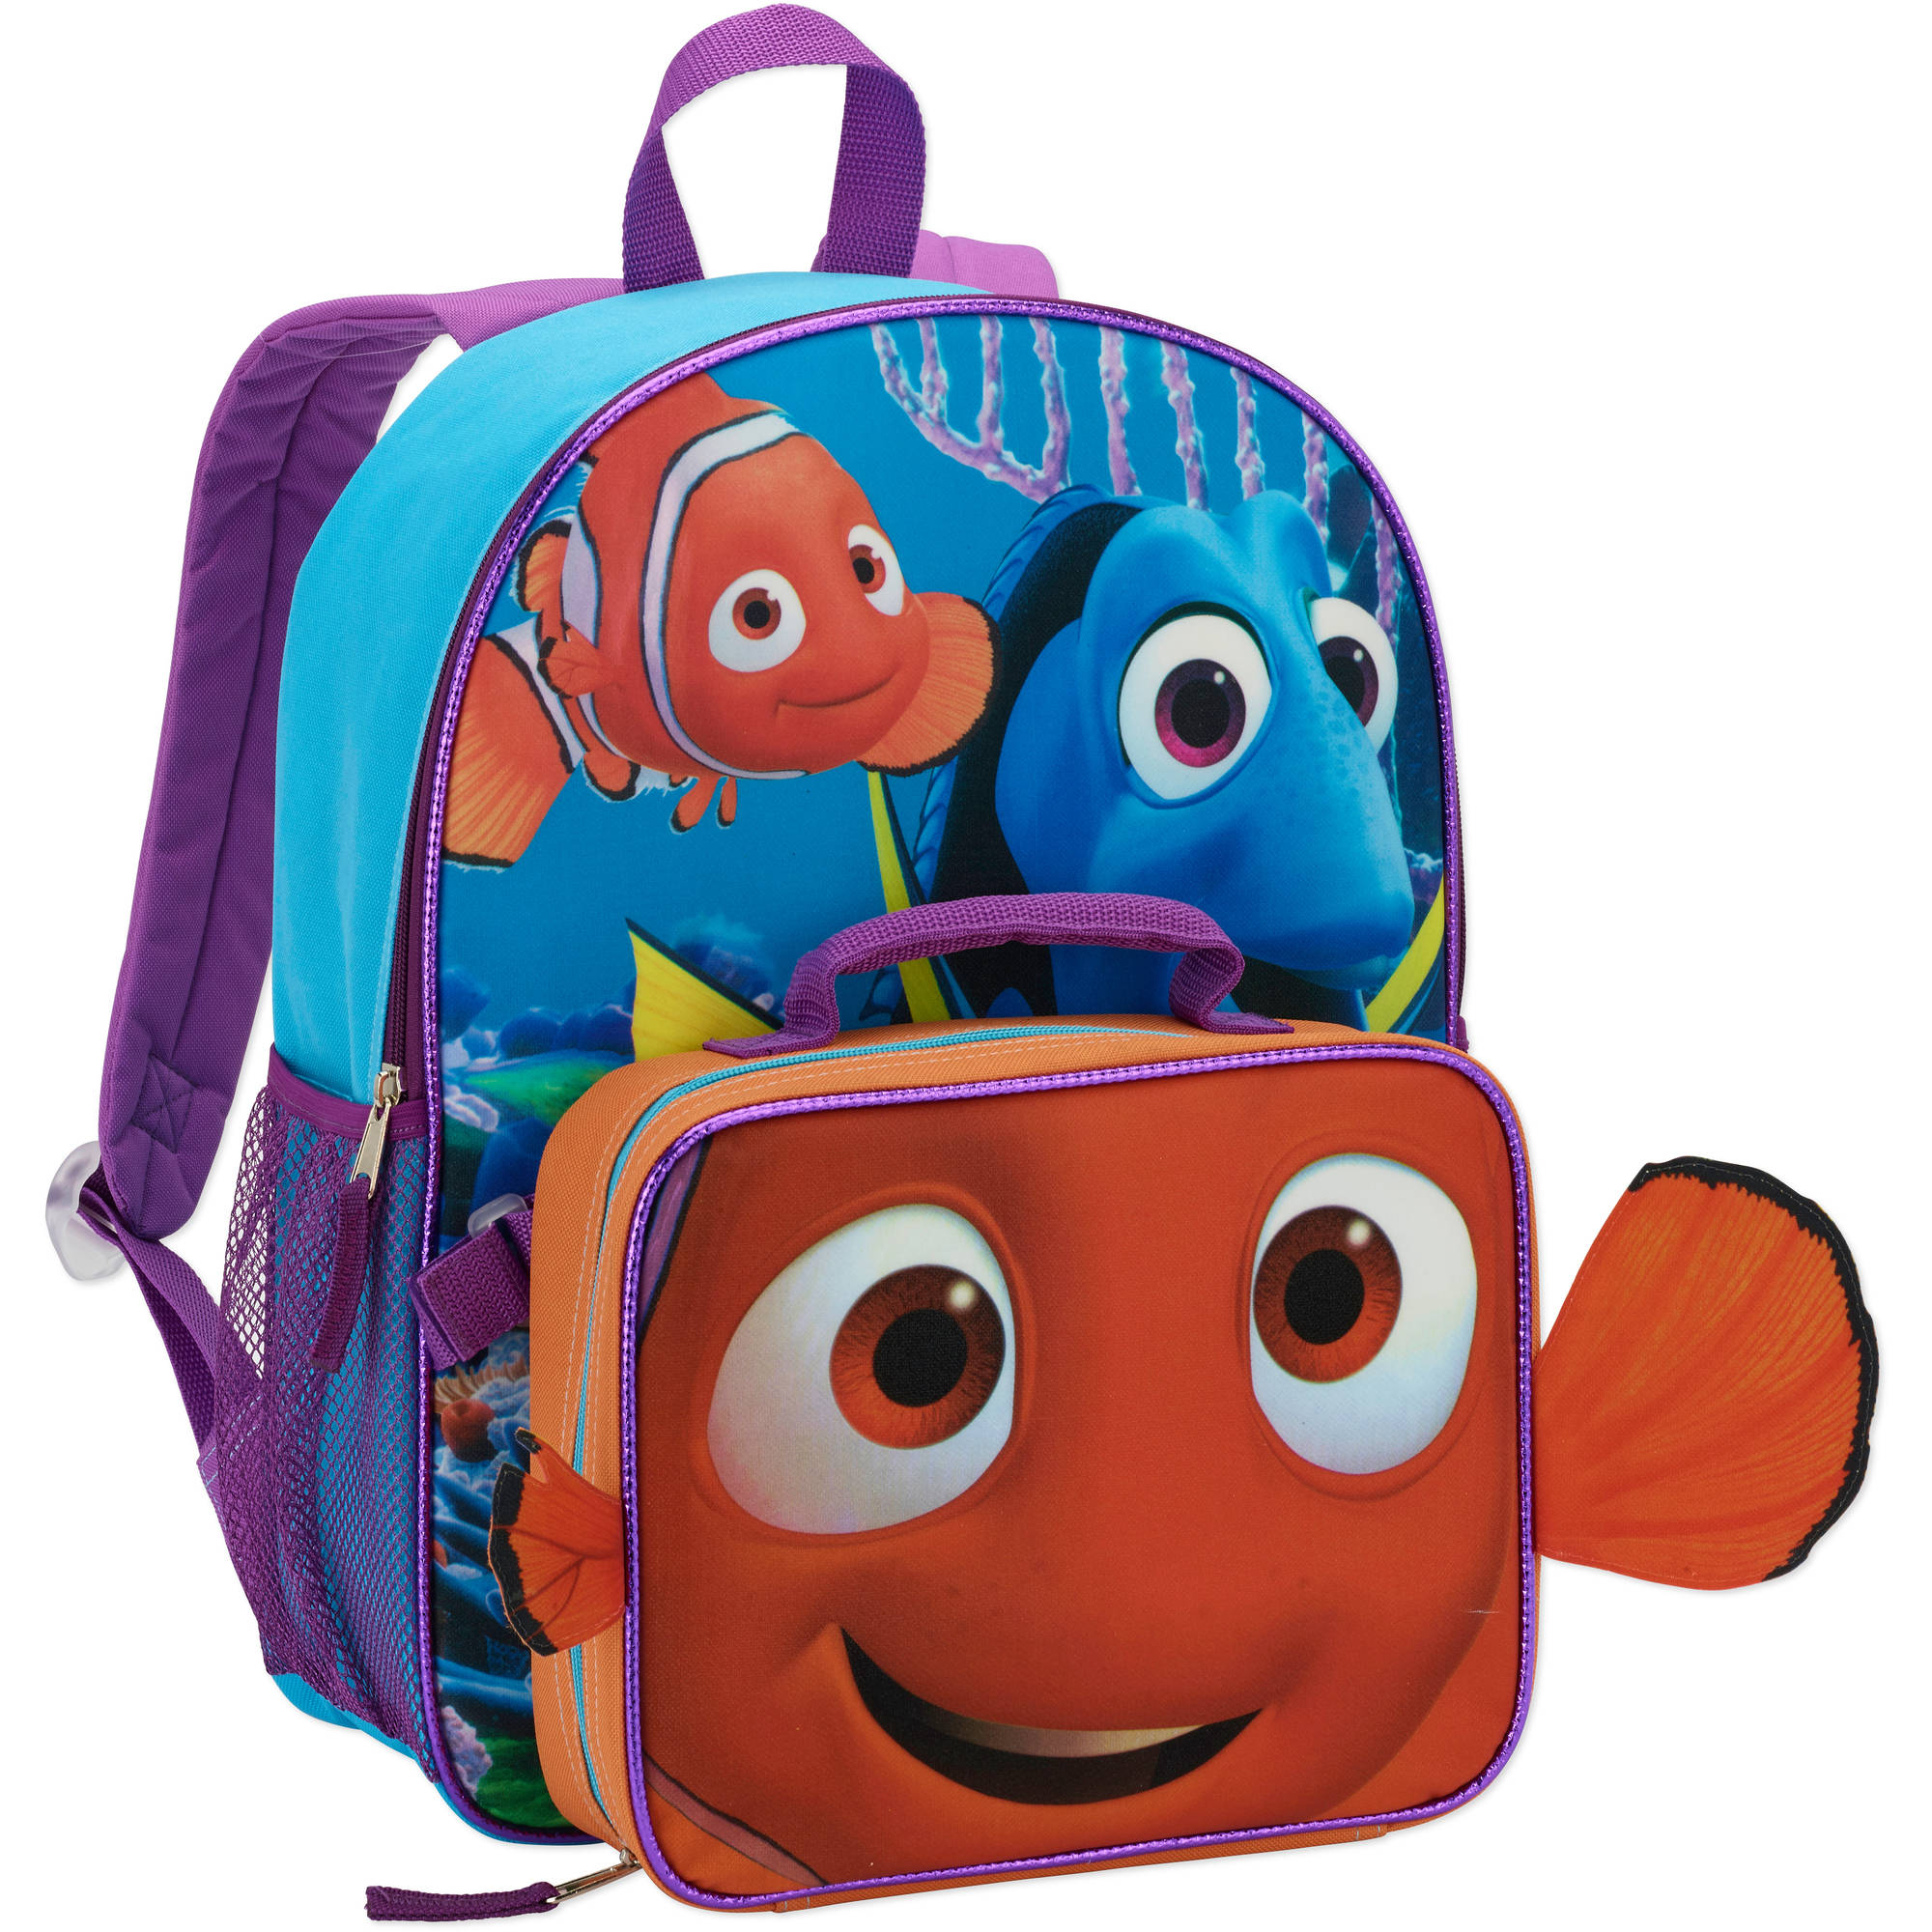 "Disney Finding Dory 16"" Full Size Backpack w/ Detachable Lunch Bag"